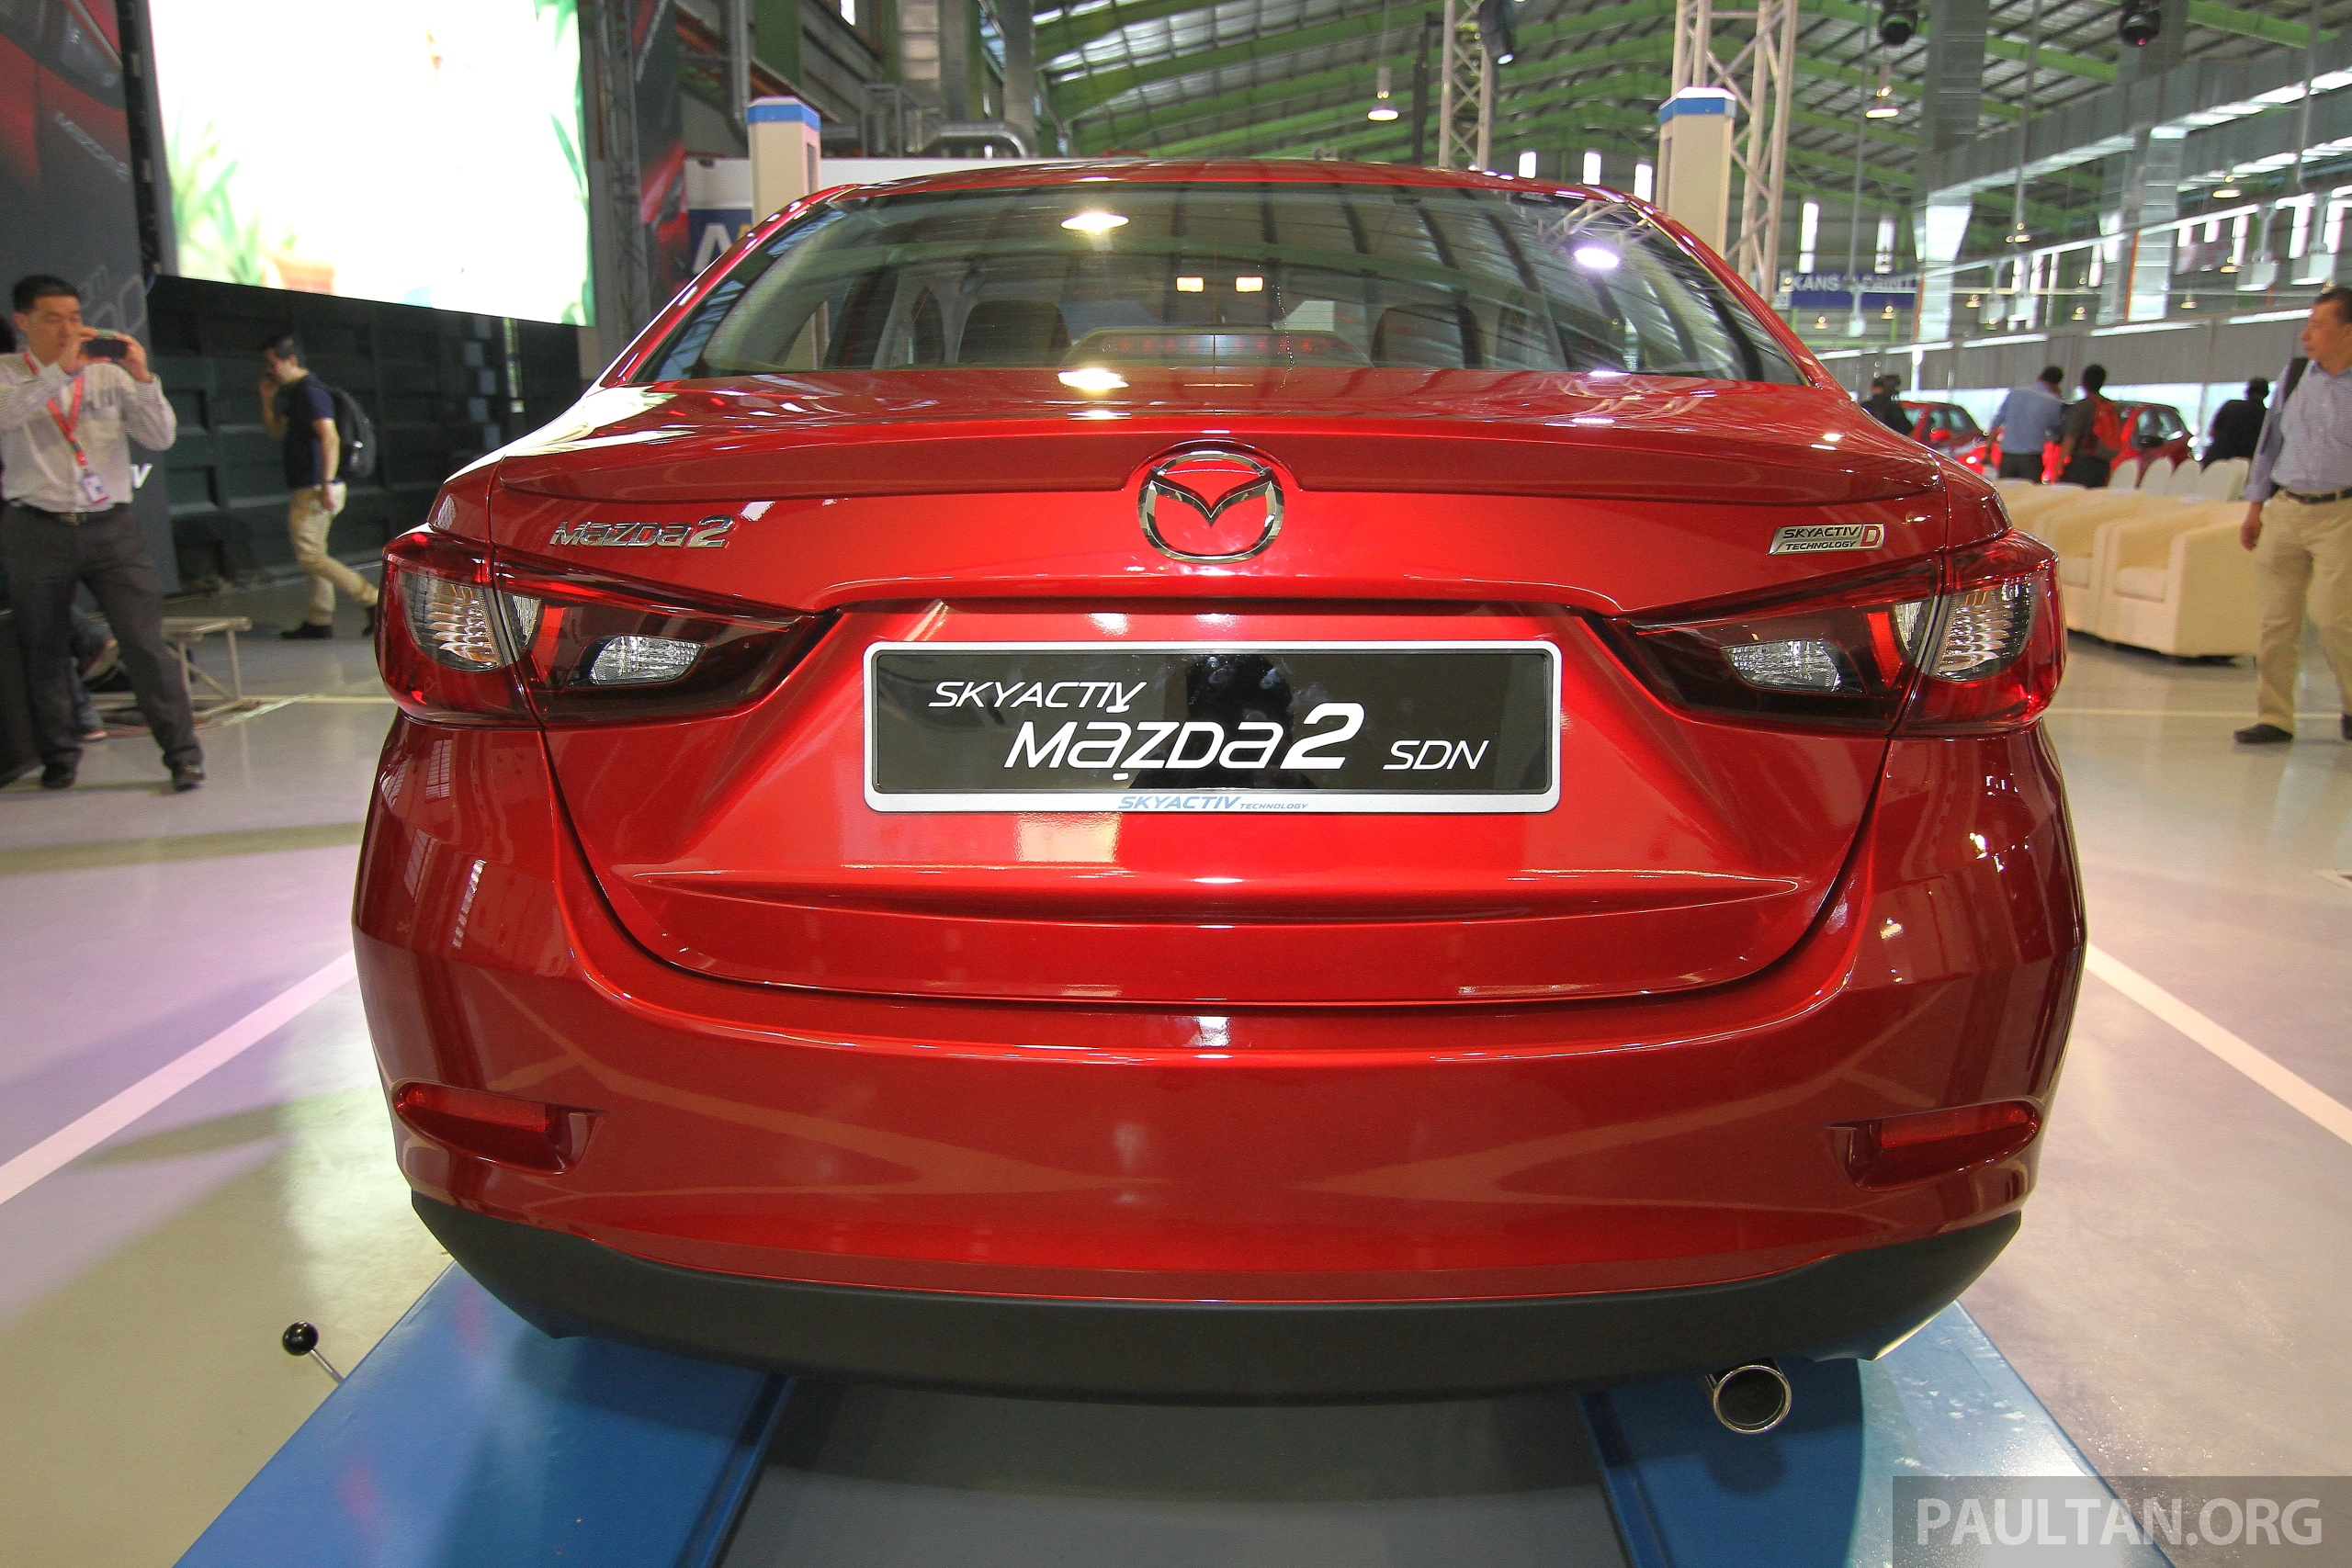 mazda 2 sedan skyactiv d diesel displayed at launch. Black Bedroom Furniture Sets. Home Design Ideas